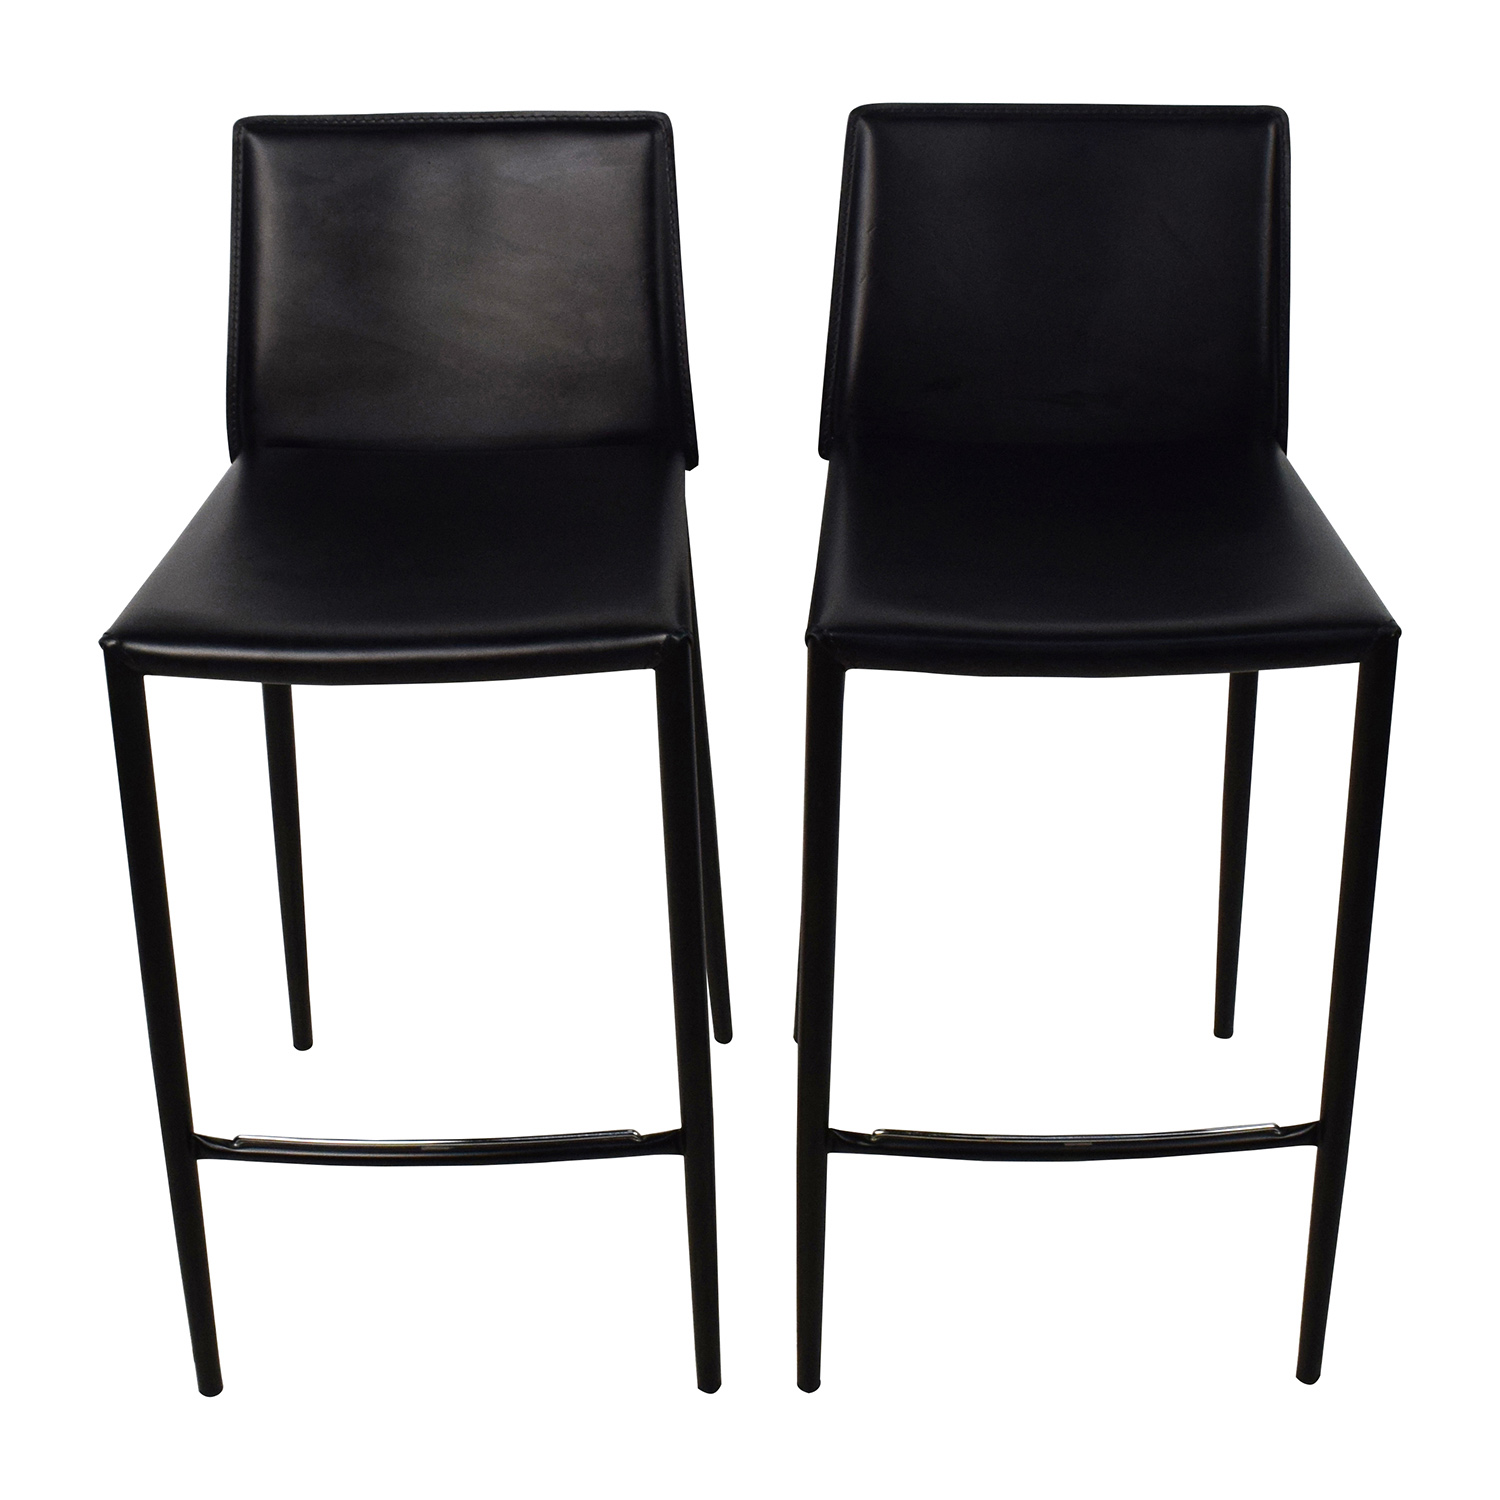 shop Calligaris Calligaris Boheme Black Leather Bar Stool Set online